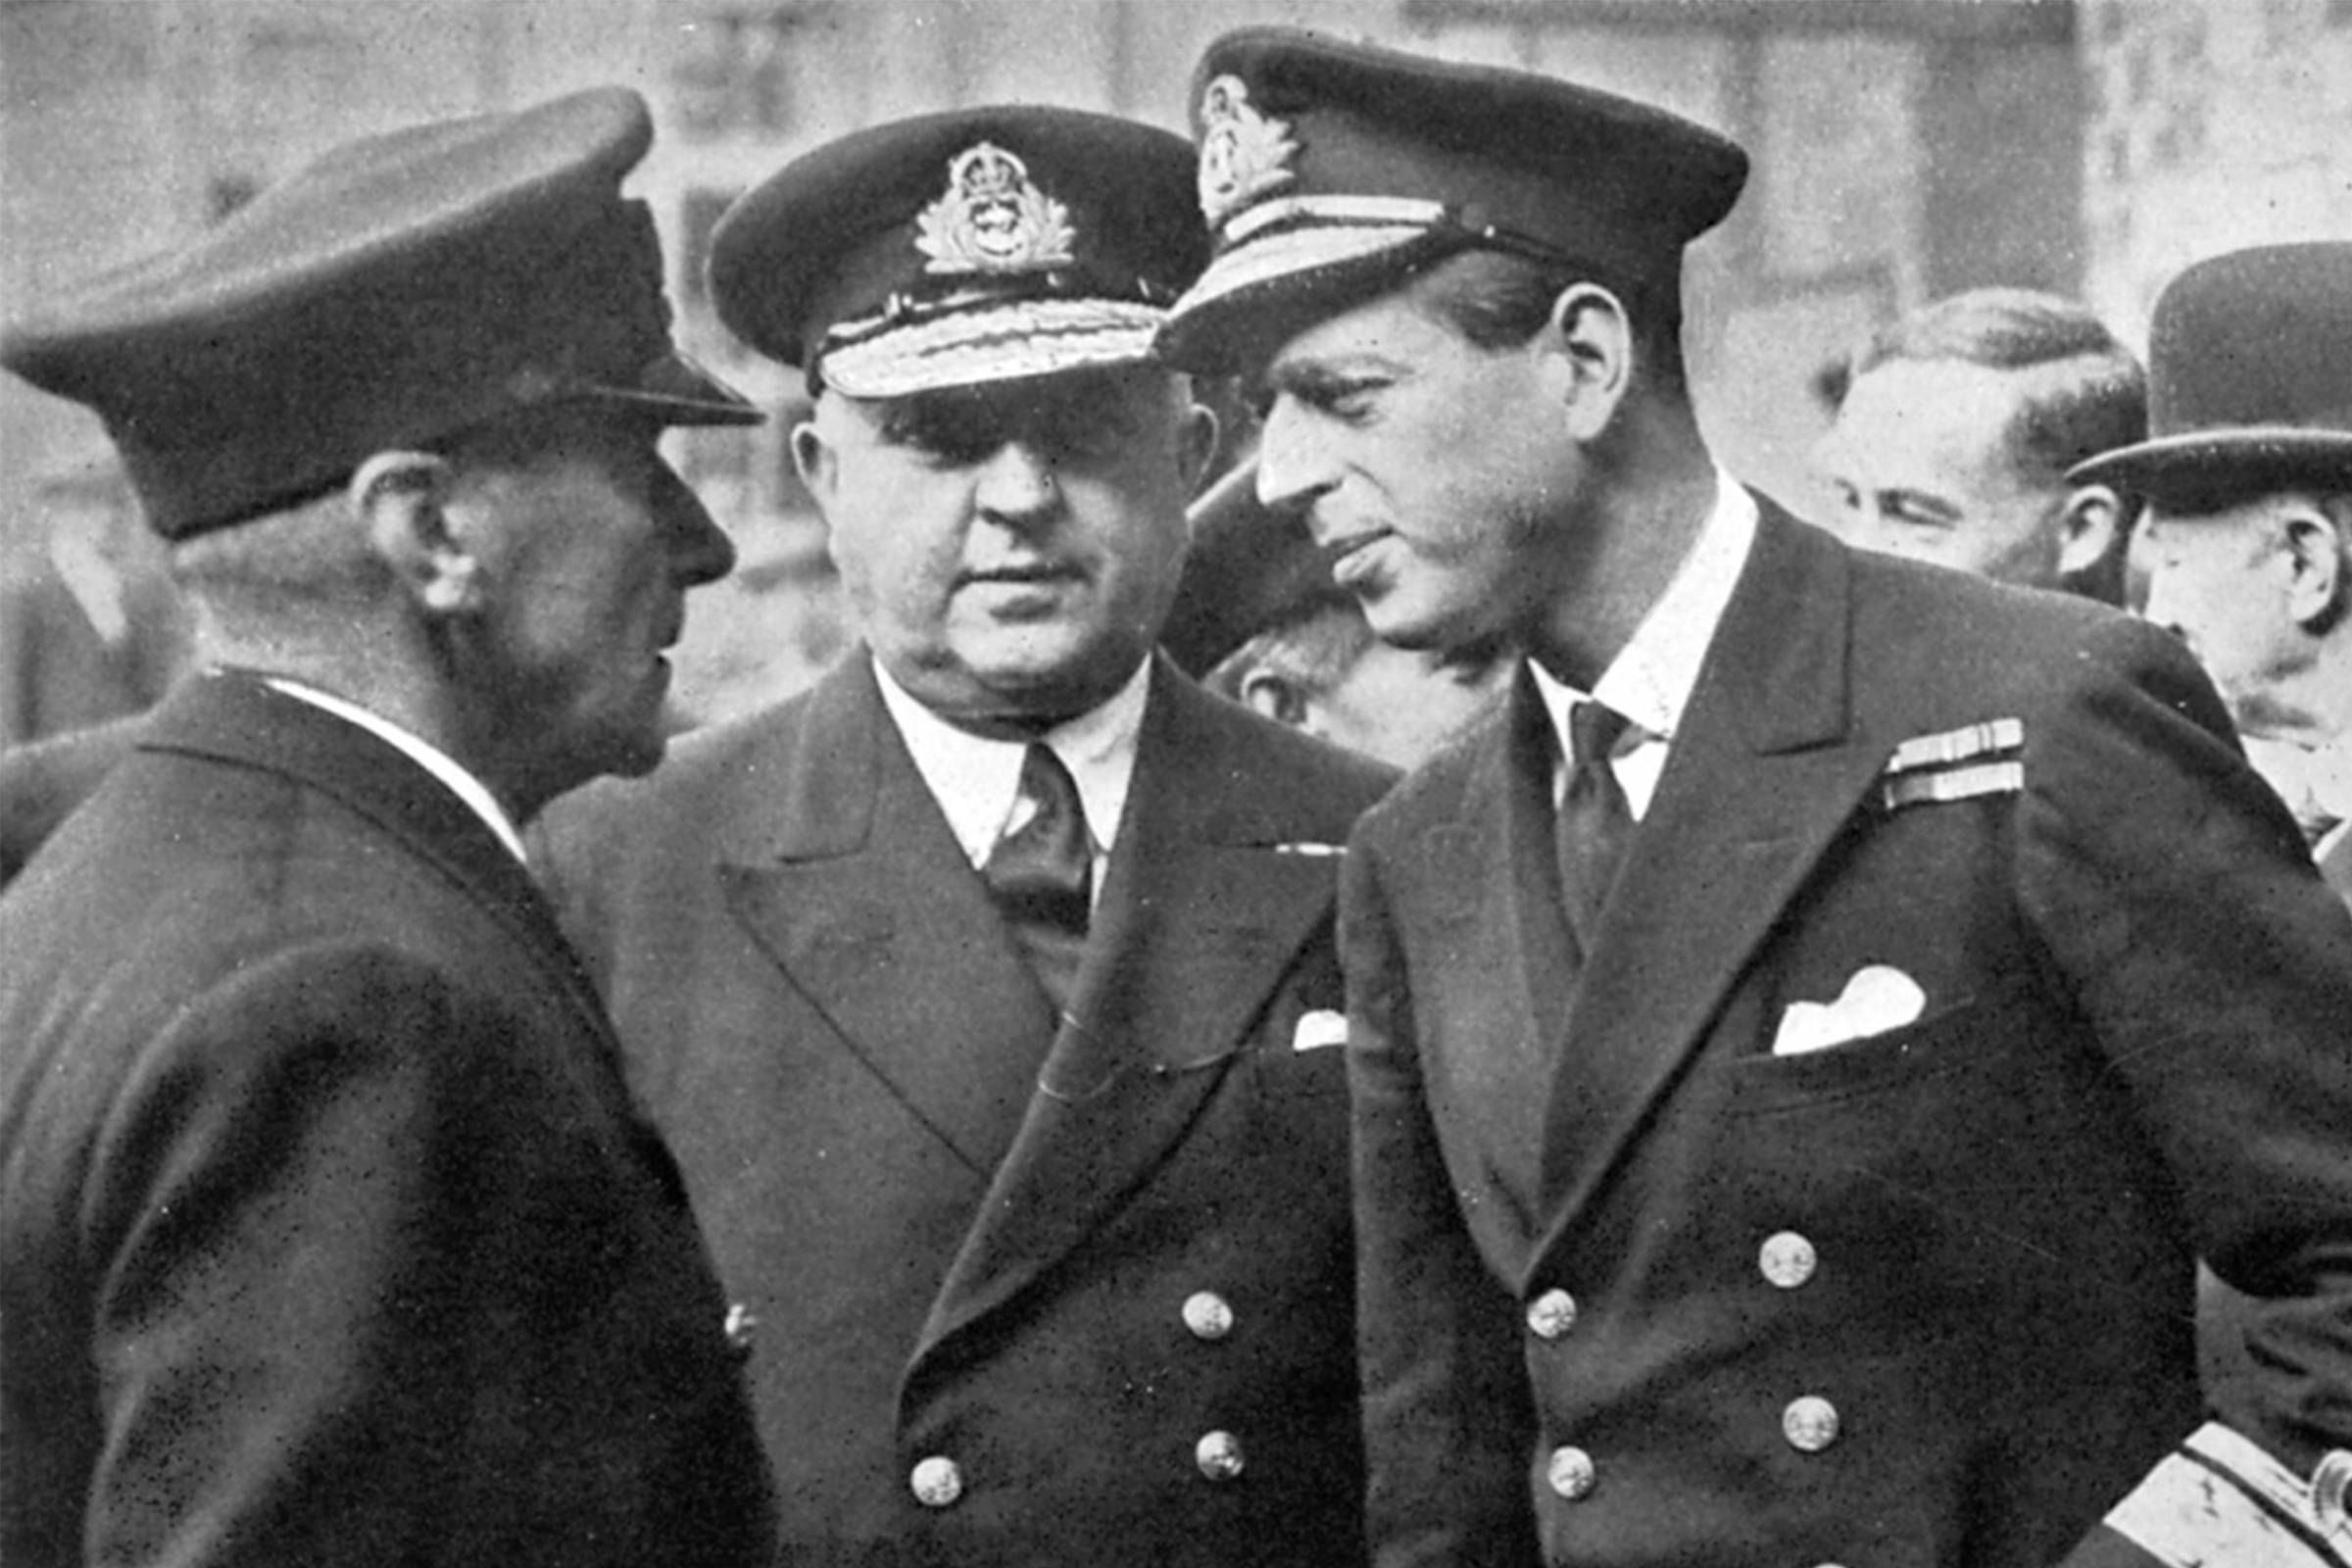 Petty Officers of the British Royal Navy, early 20th Century